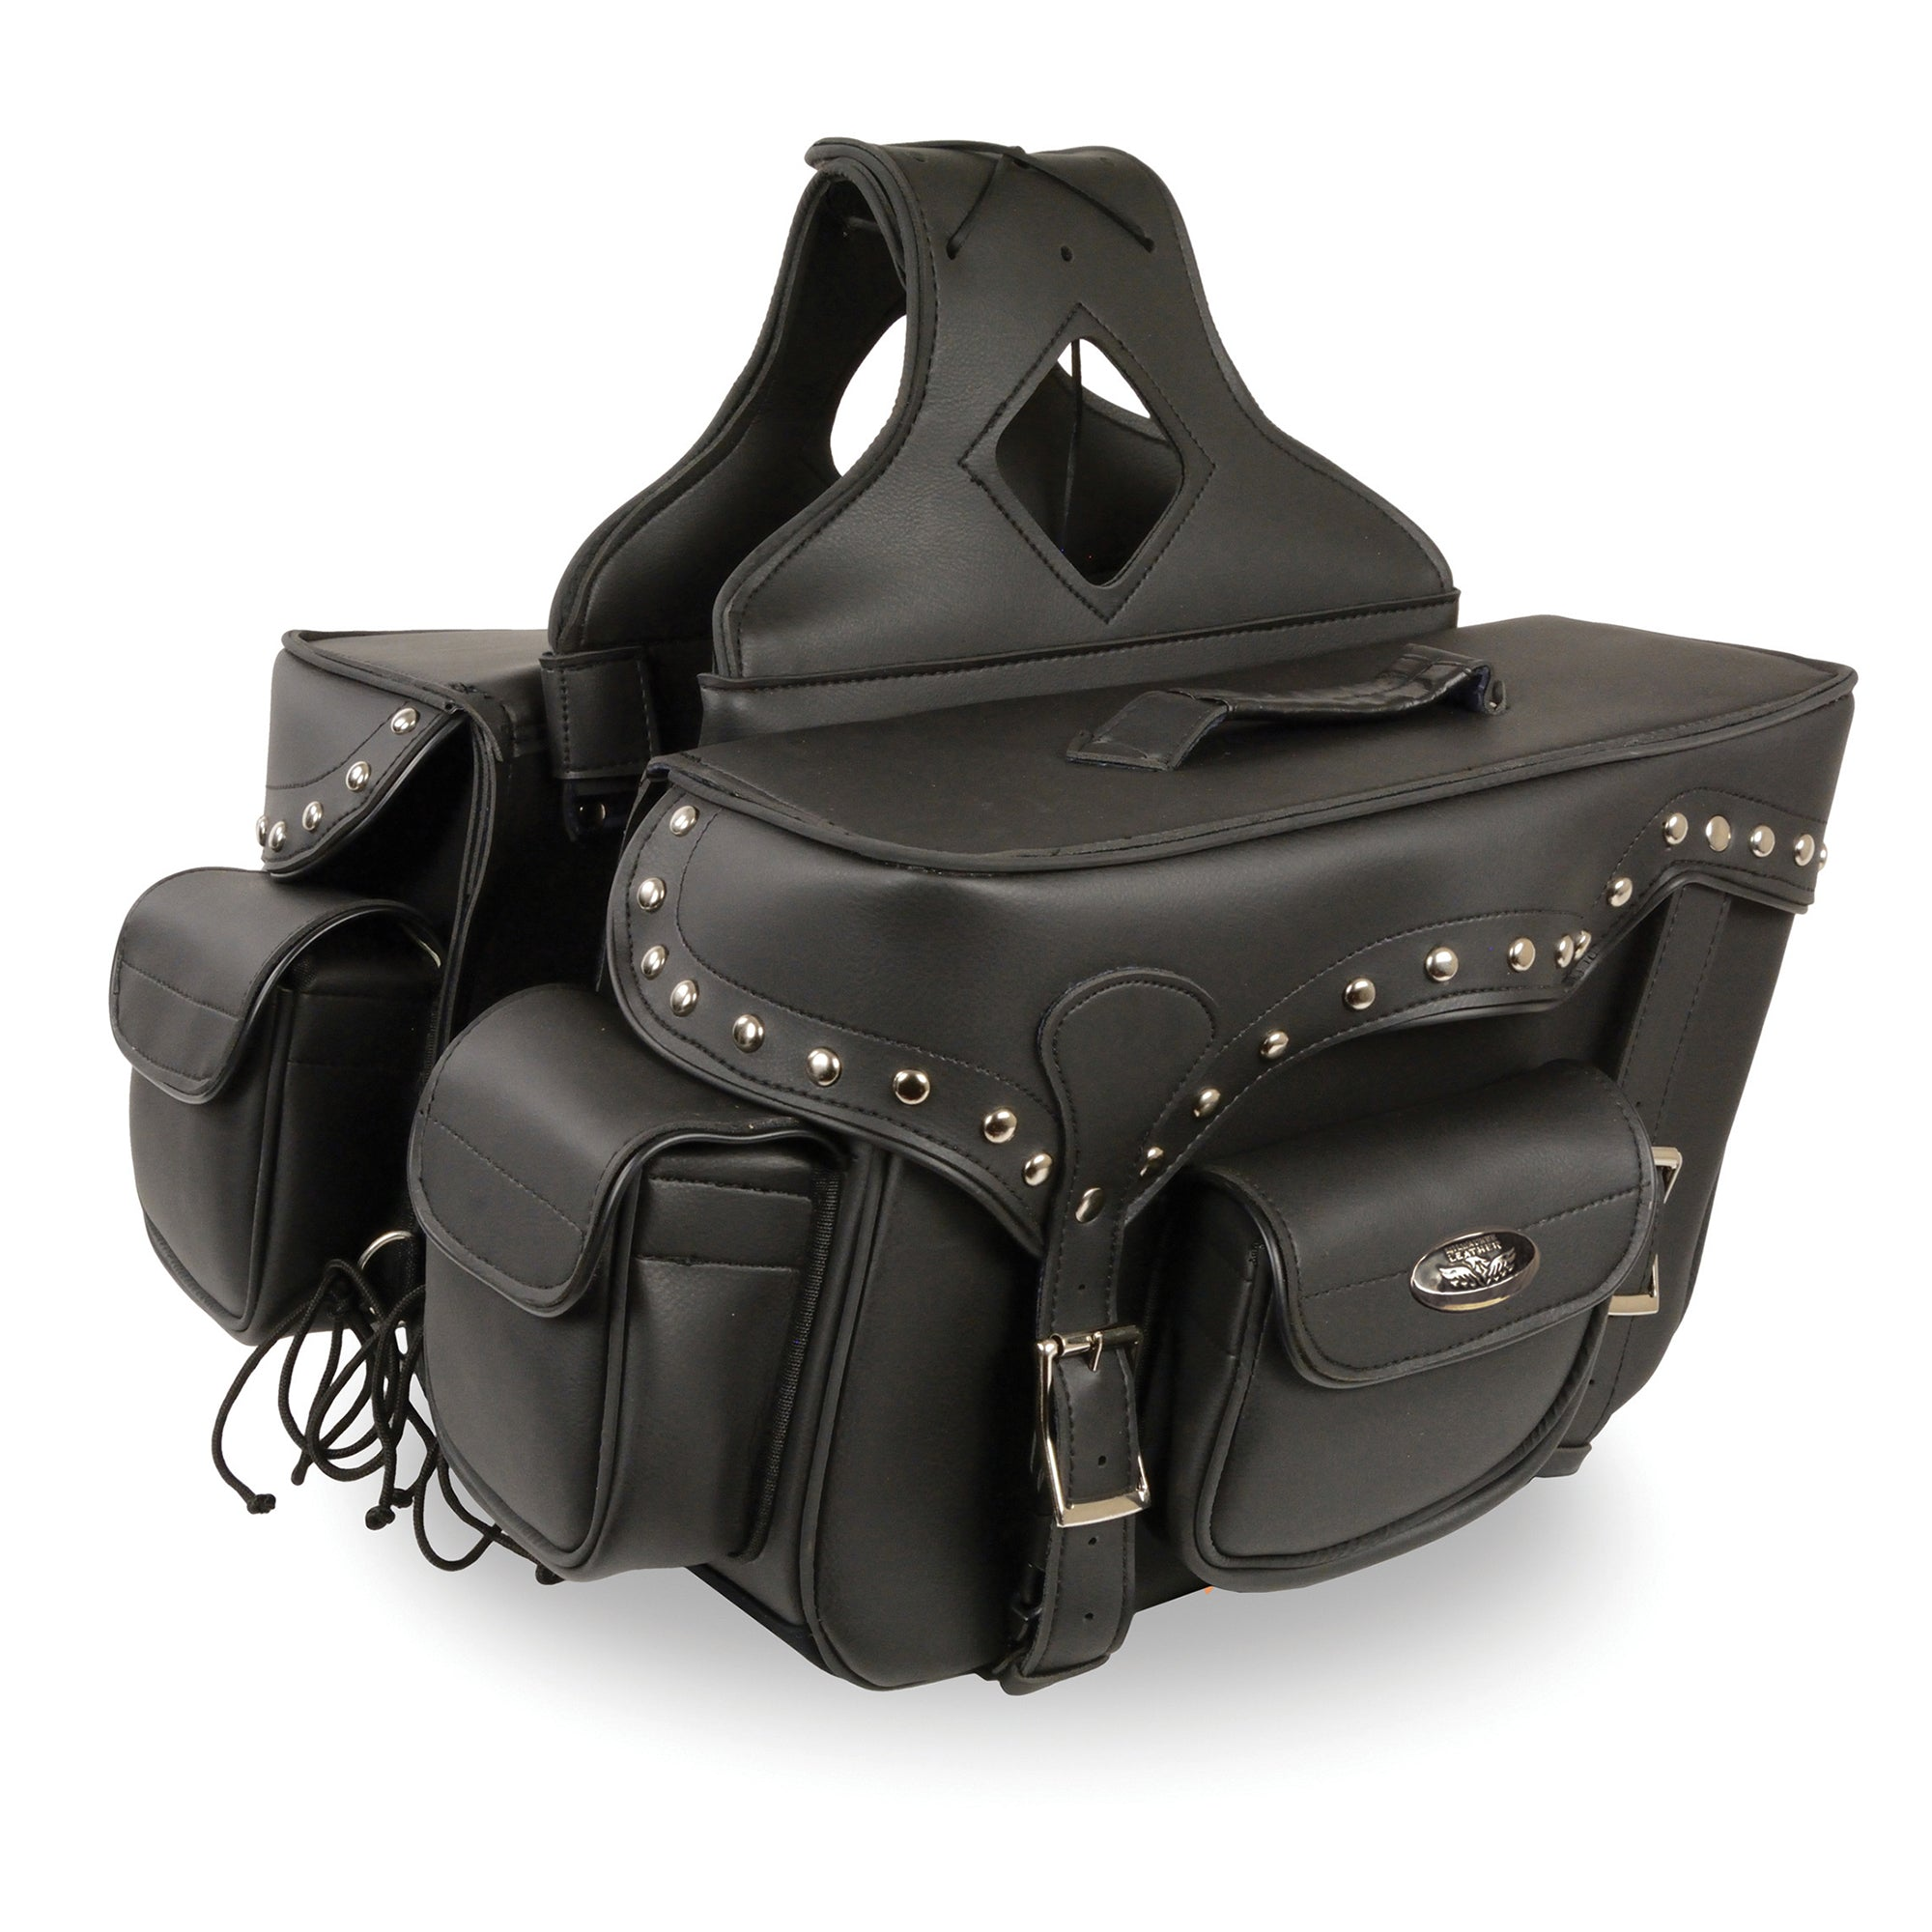 Double Front Pocket Studded PVC Throw Over Saddle Bag w/ Reflective Piping